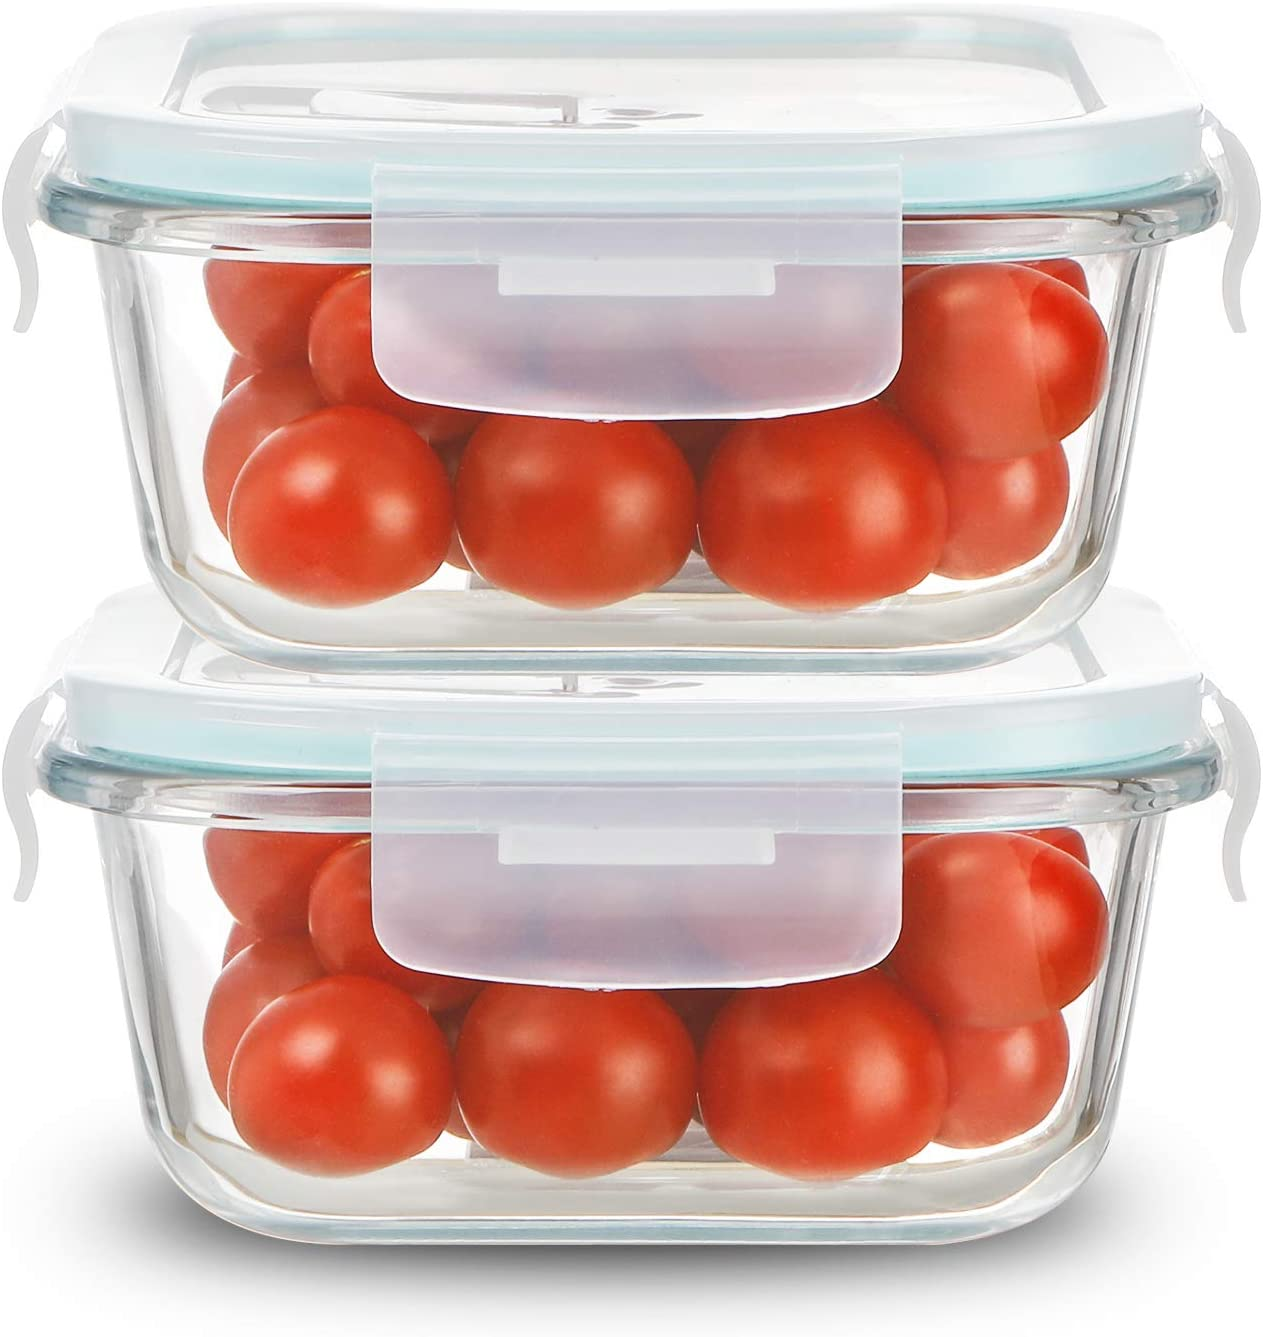 Sweejar 10 oz Glass Food Storage Containers Set with Lids(2 pack),Square Airtight Glass Meal Prep Containers,Lunch Box Containers,Freezer to Oven Safe